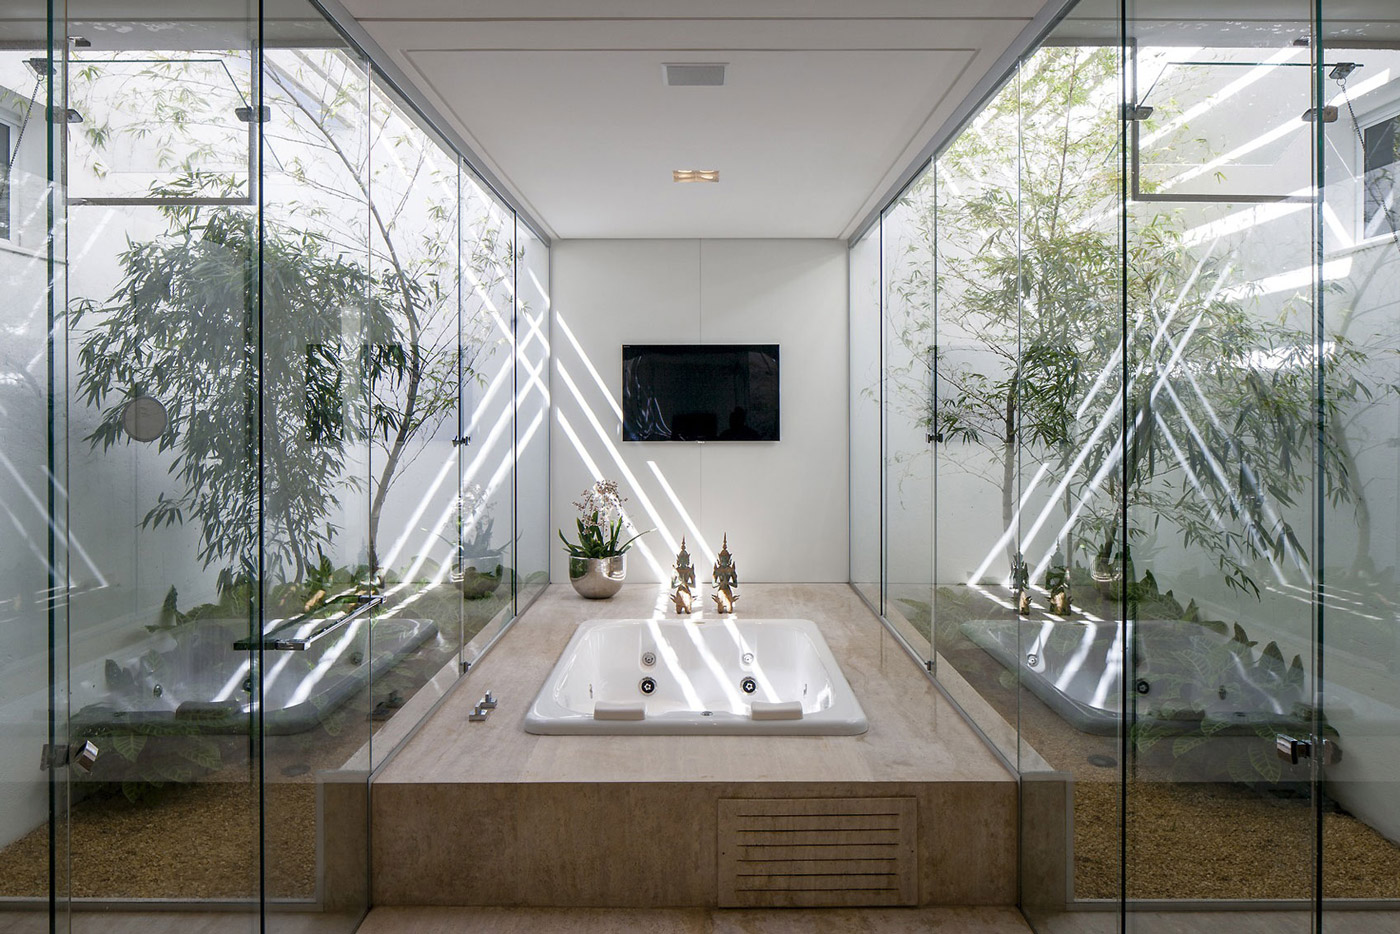 Bathroom, Bath Tub, Glass Walls, Home in Uberlandia, Brazil